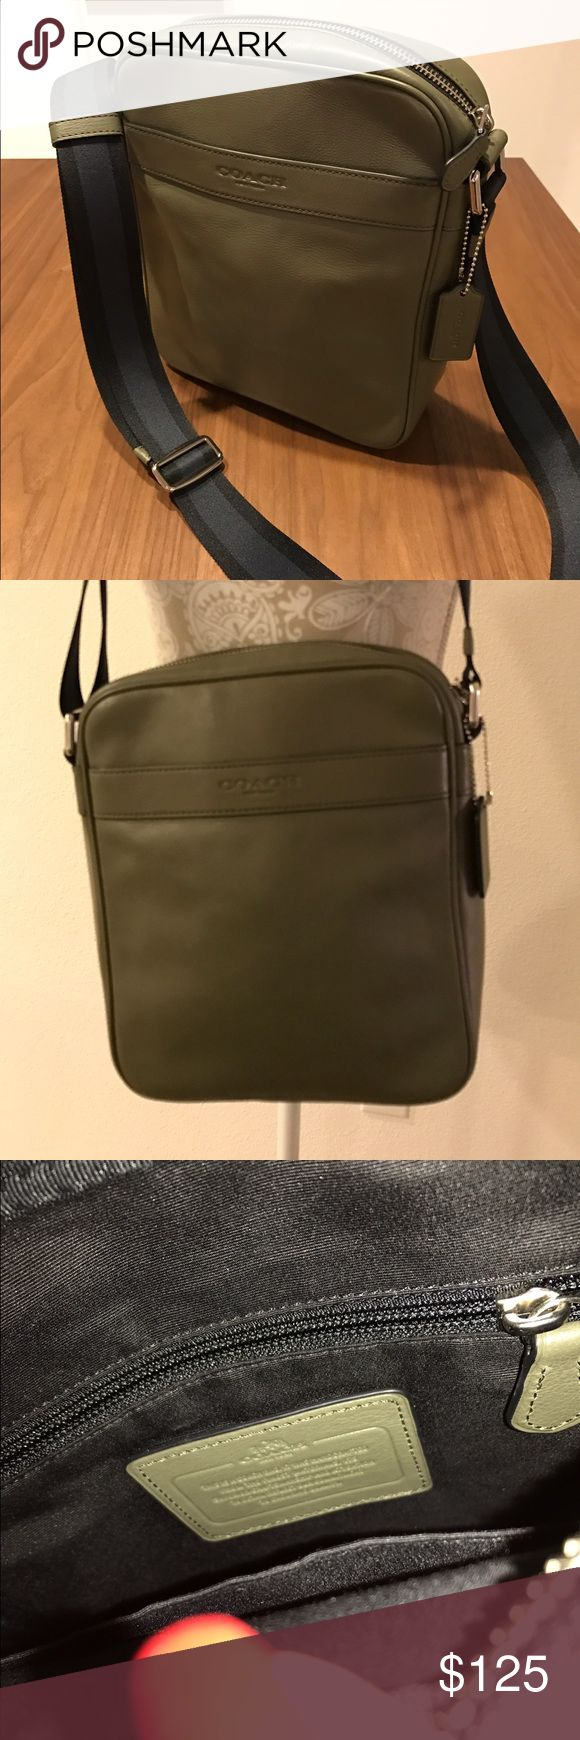 Coach Messenger Bag Very nice unisex Coach leather messenger bag in army green. Only used a few times. Excellent condition, no flaws. Coach Bags Shoulder Bags